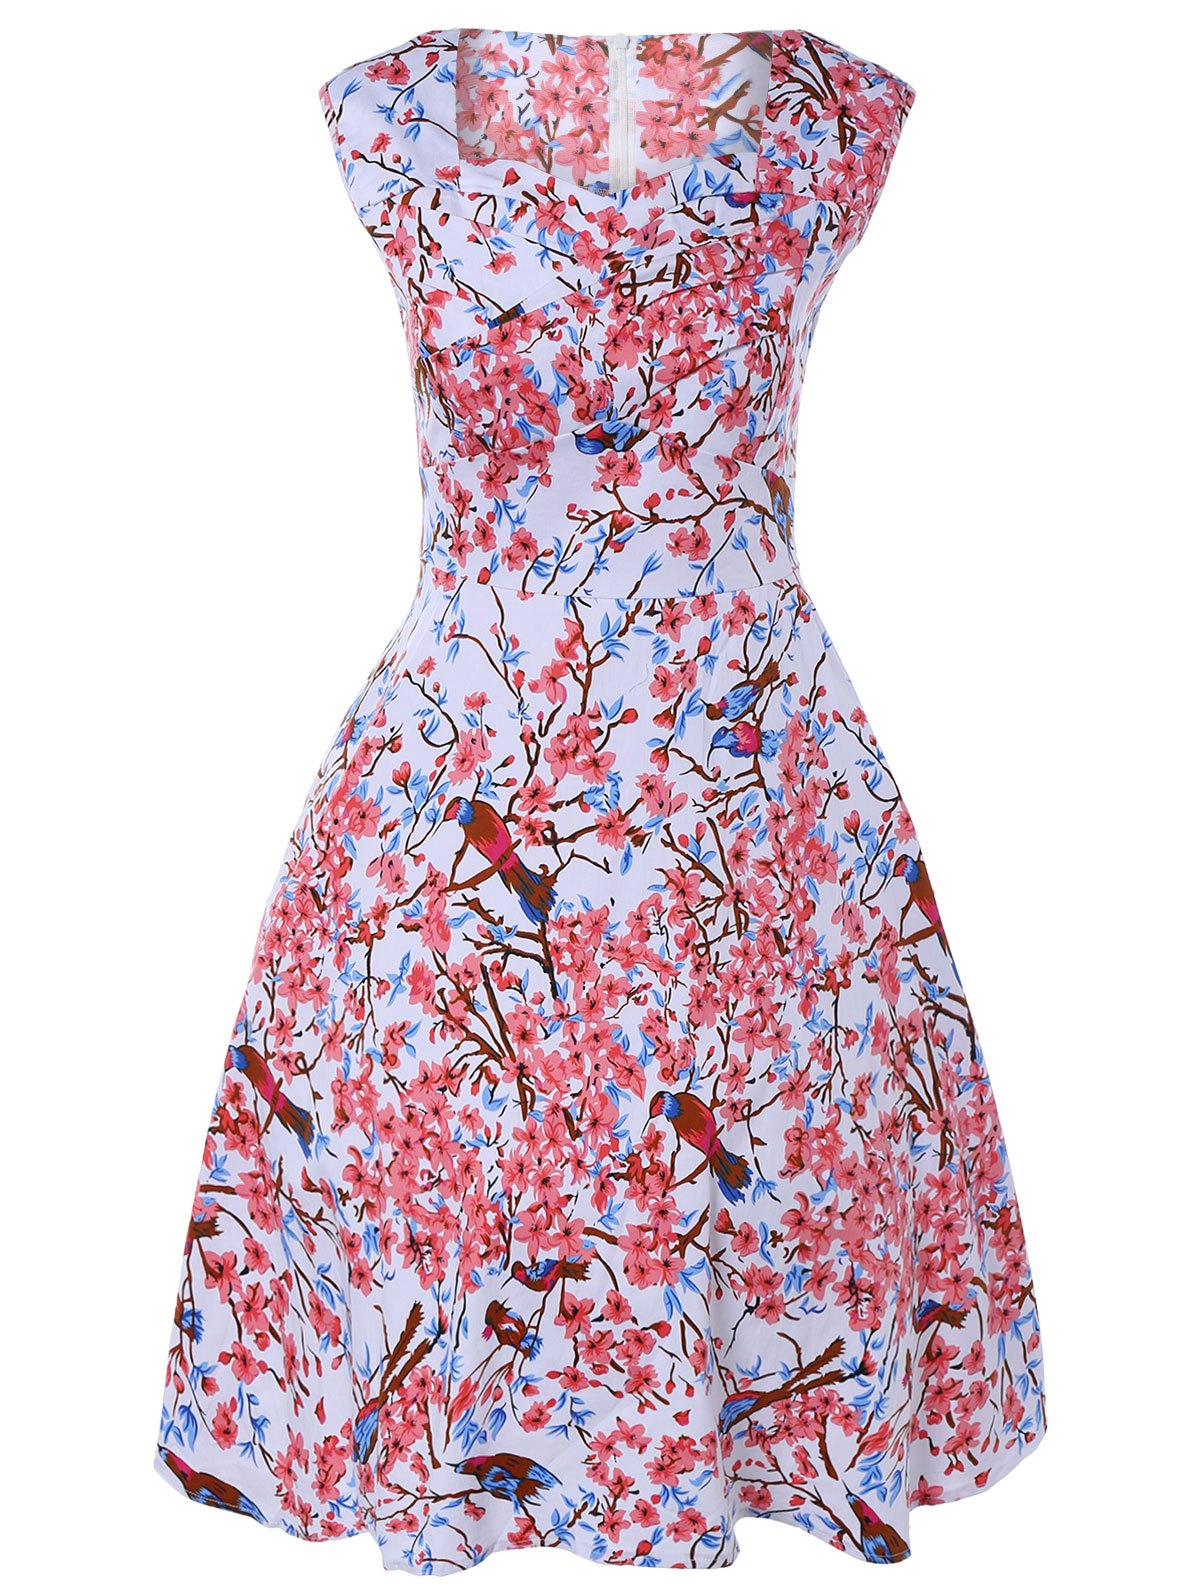 Sleeveless Sweetheart Neck Retro Floral Flare Dress - COLORMIX 4XL